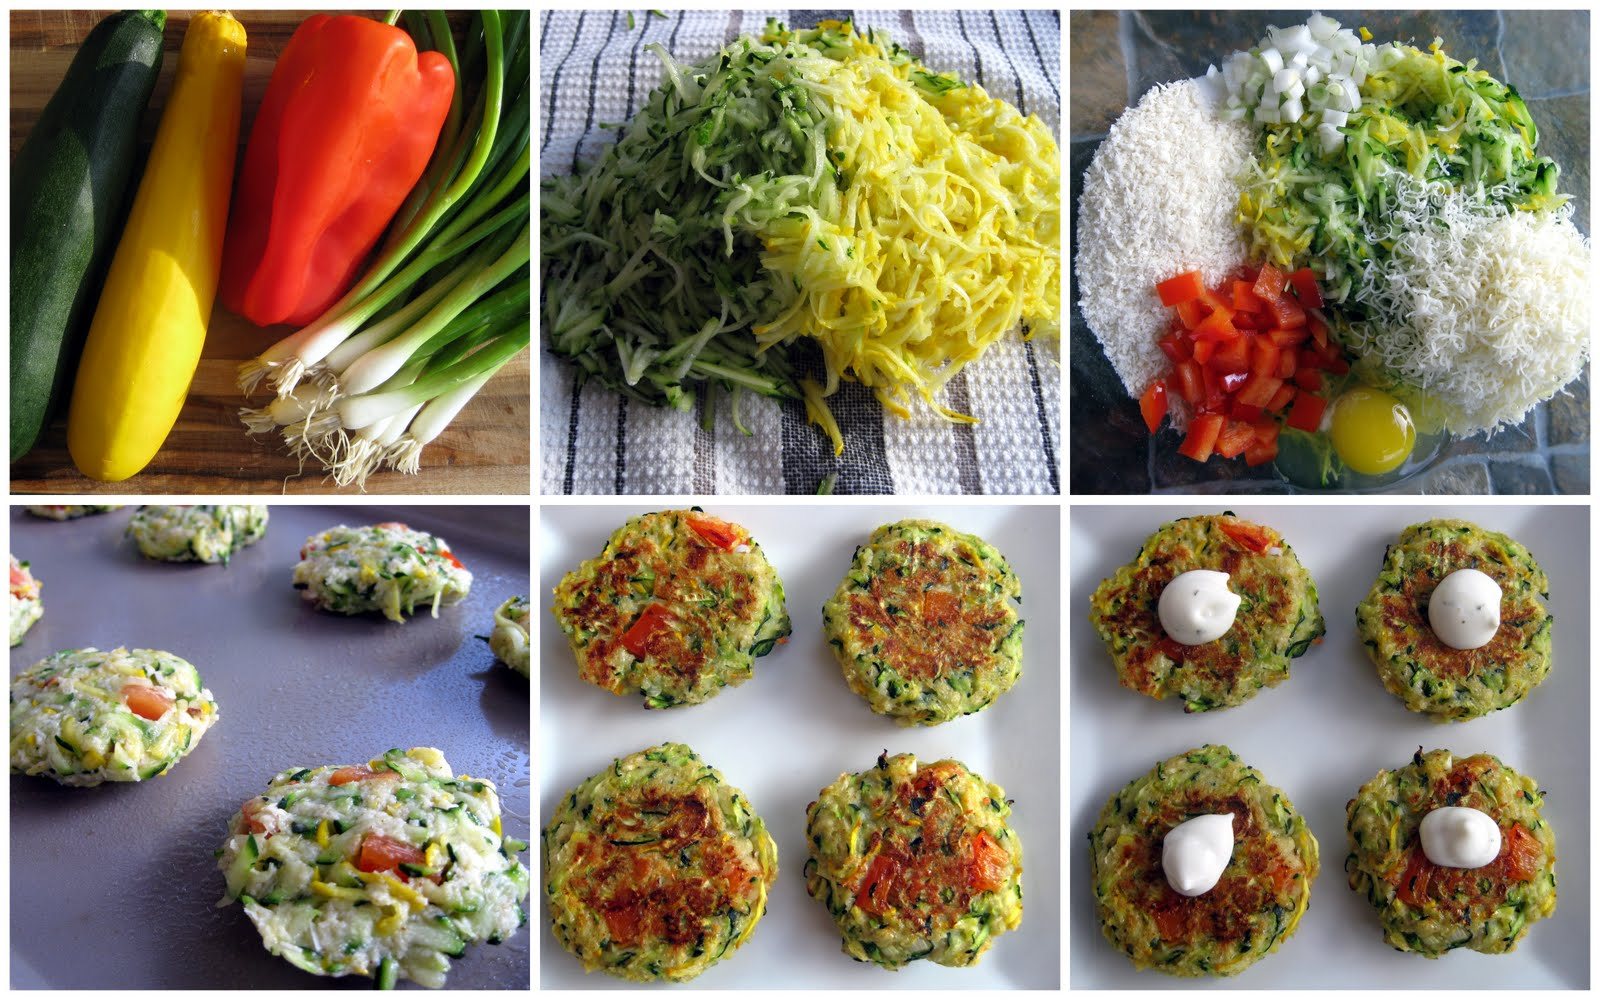 Karis' Kitchen | A Vegetarian Food Blog: Baked Zucchini Cakes